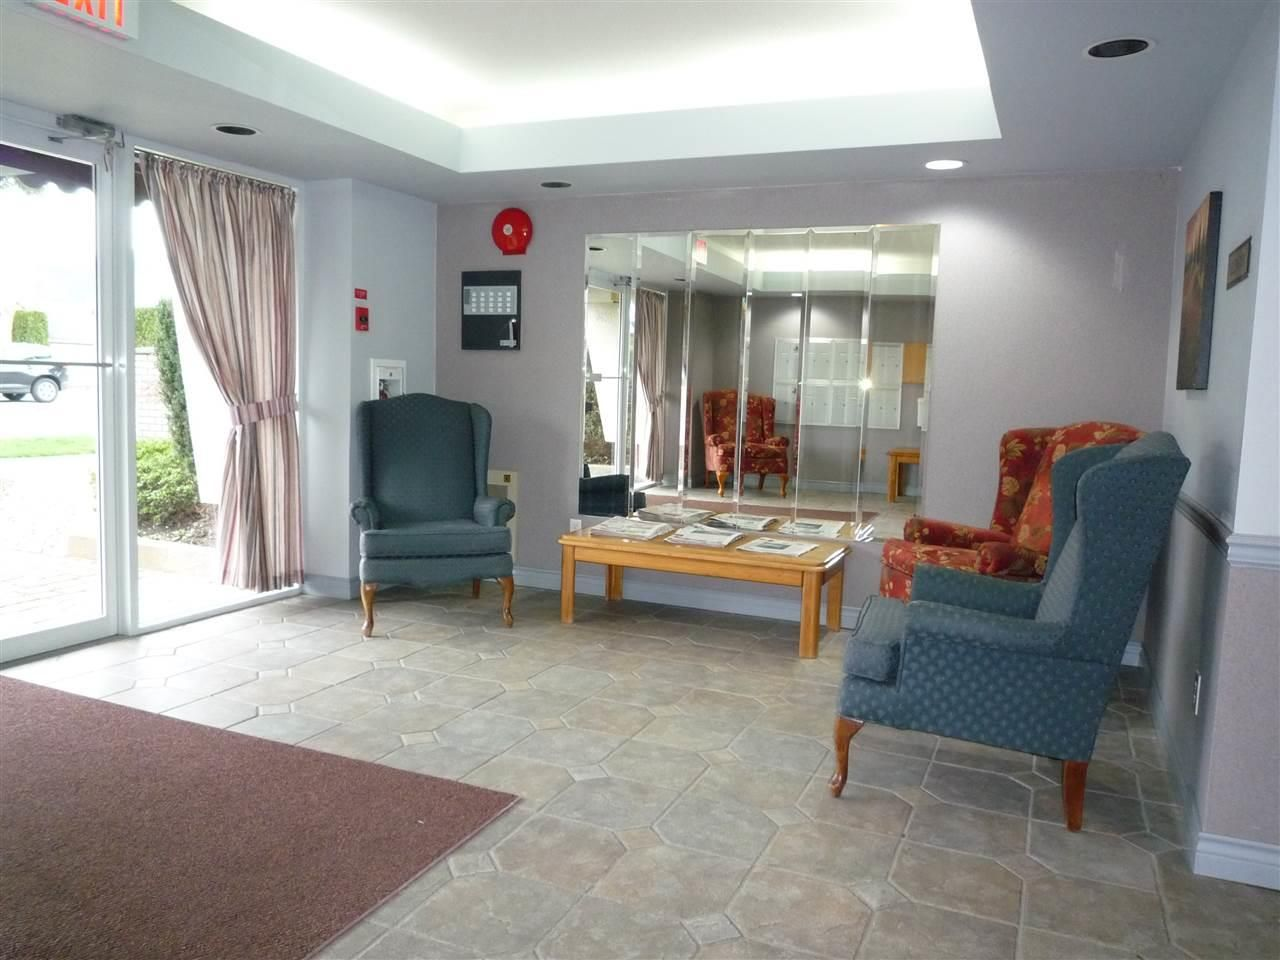 """Photo 3: Photos: 104 9400 COOK Street in Chilliwack: Chilliwack N Yale-Well Condo for sale in """"THE WELLINGTON"""" : MLS®# R2076679"""